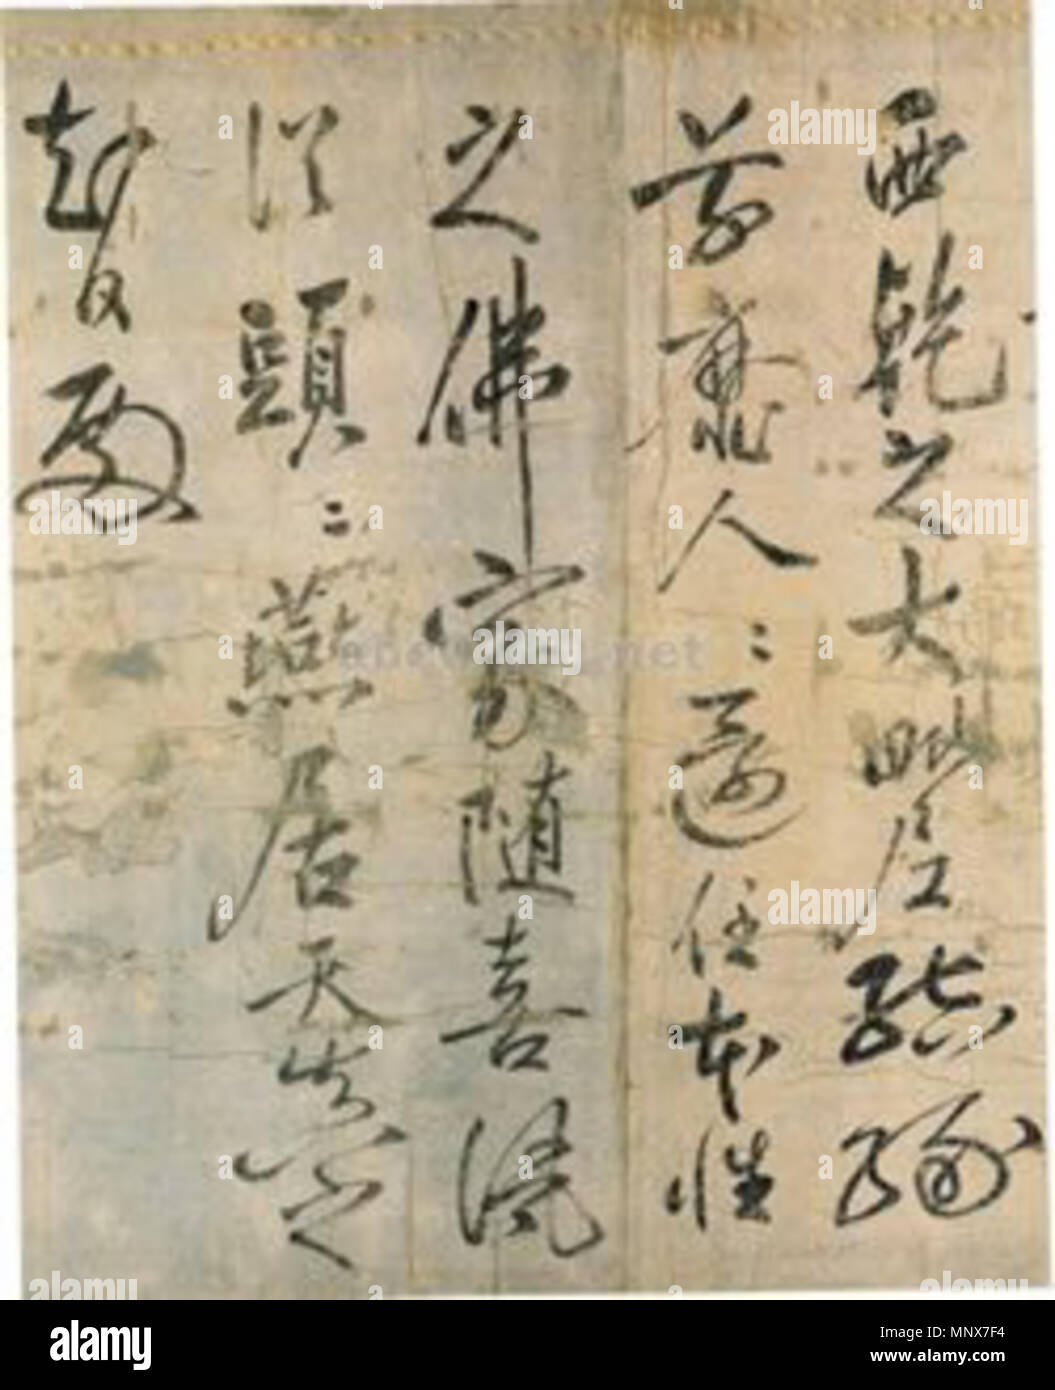 . English: Letter soliciting donations for the restoration of Sennyū-ji temple (泉涌寺勧縁疏, Sennyū-ji kanenso). one scroll, ink on paper, 40.6 cm × 296.0 cm (16.0 in × 116.5 in). Located at Sennyū-ji, Kyoto. The item has been designated as National Treasure of Japan in the category ancient documents. October 1221. Shunjō 1111 Sennyu-ji restoration - Stock Image